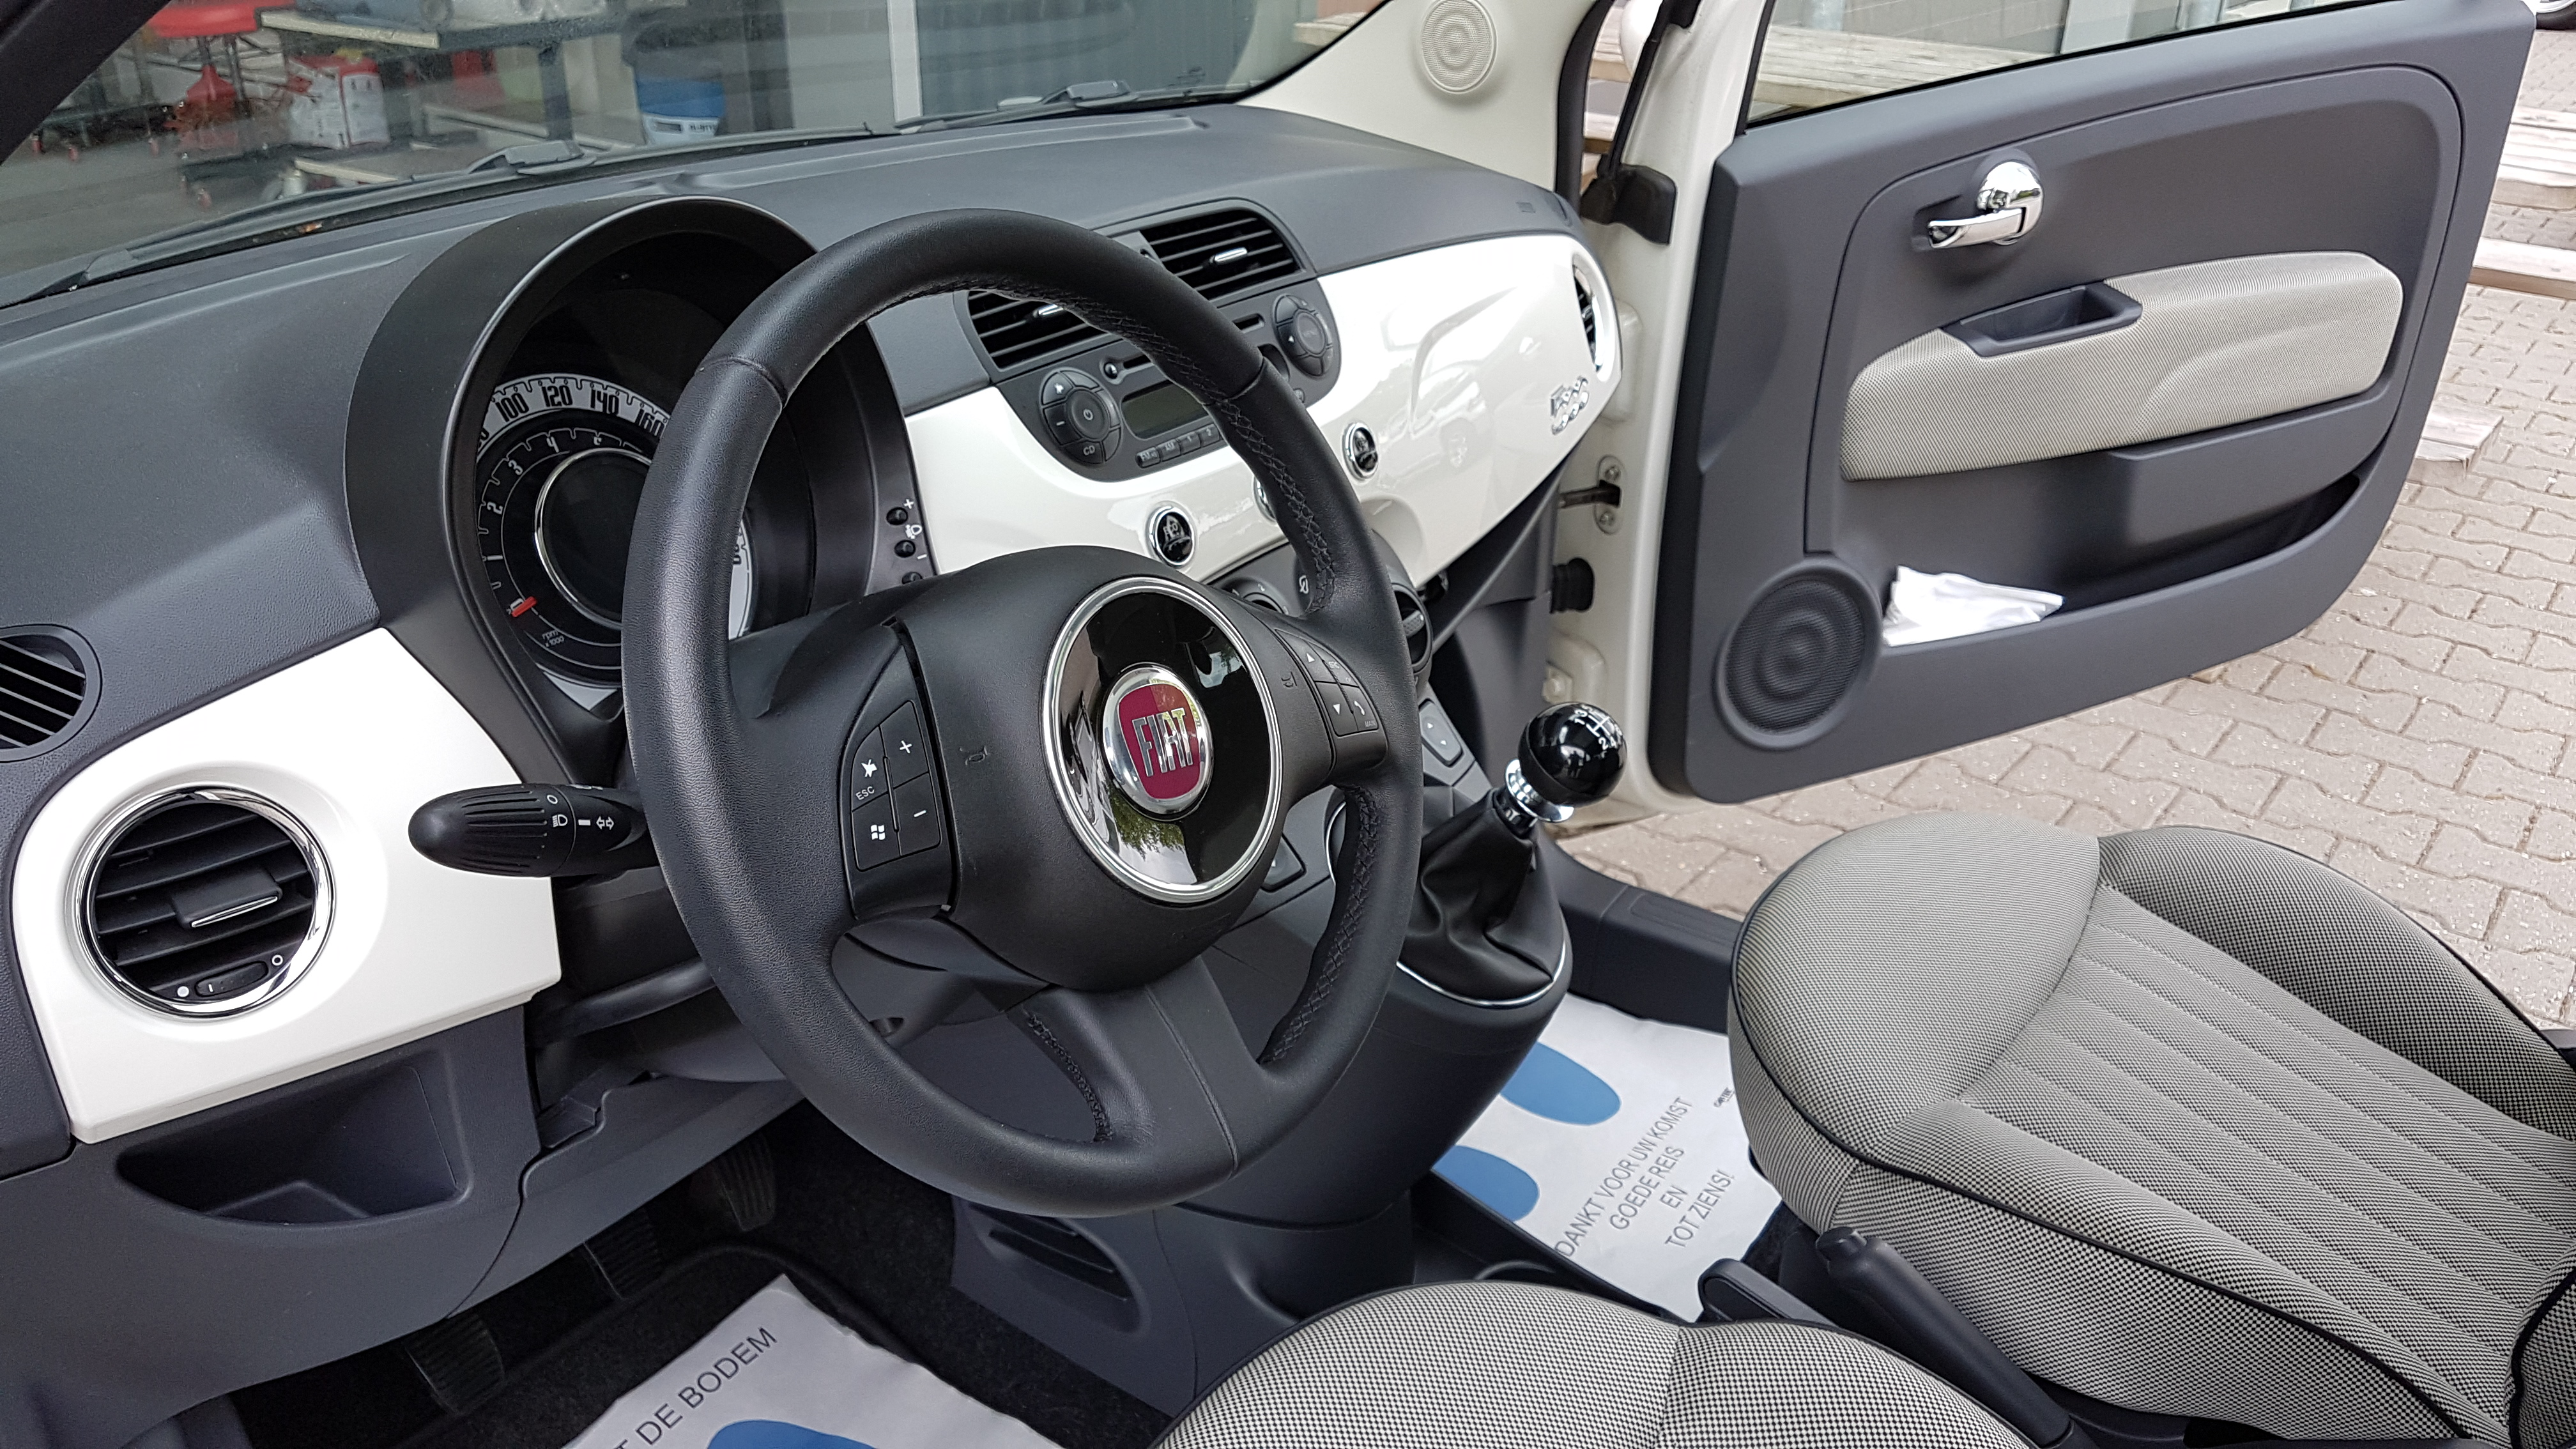 Fiat 500 Interieur Cleaning!